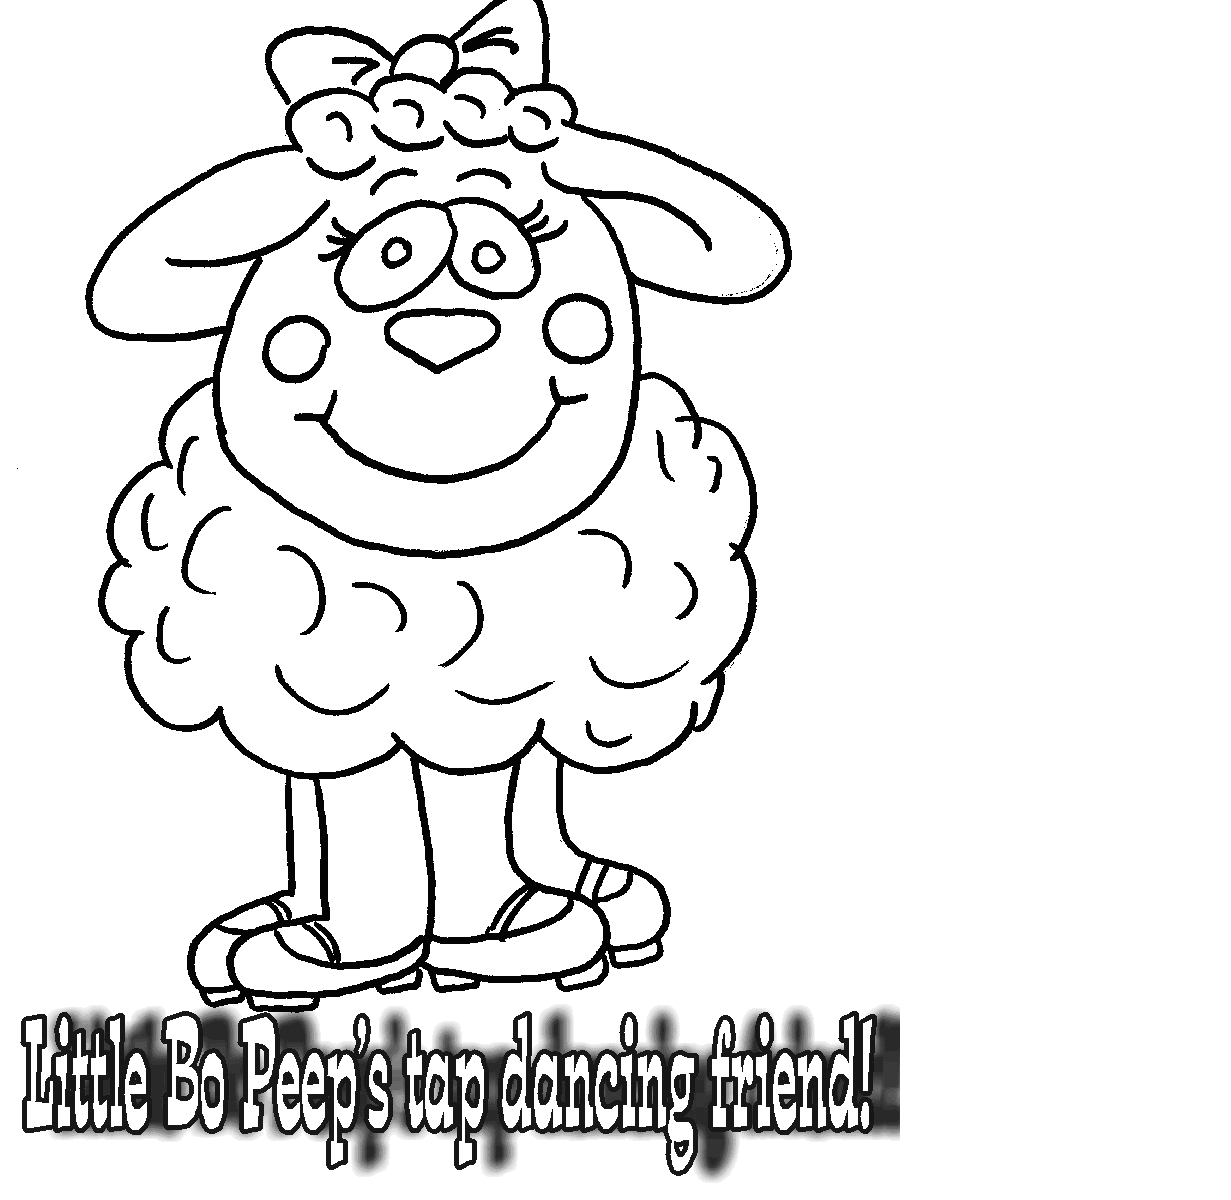 tap dance coloring pages - photo#18